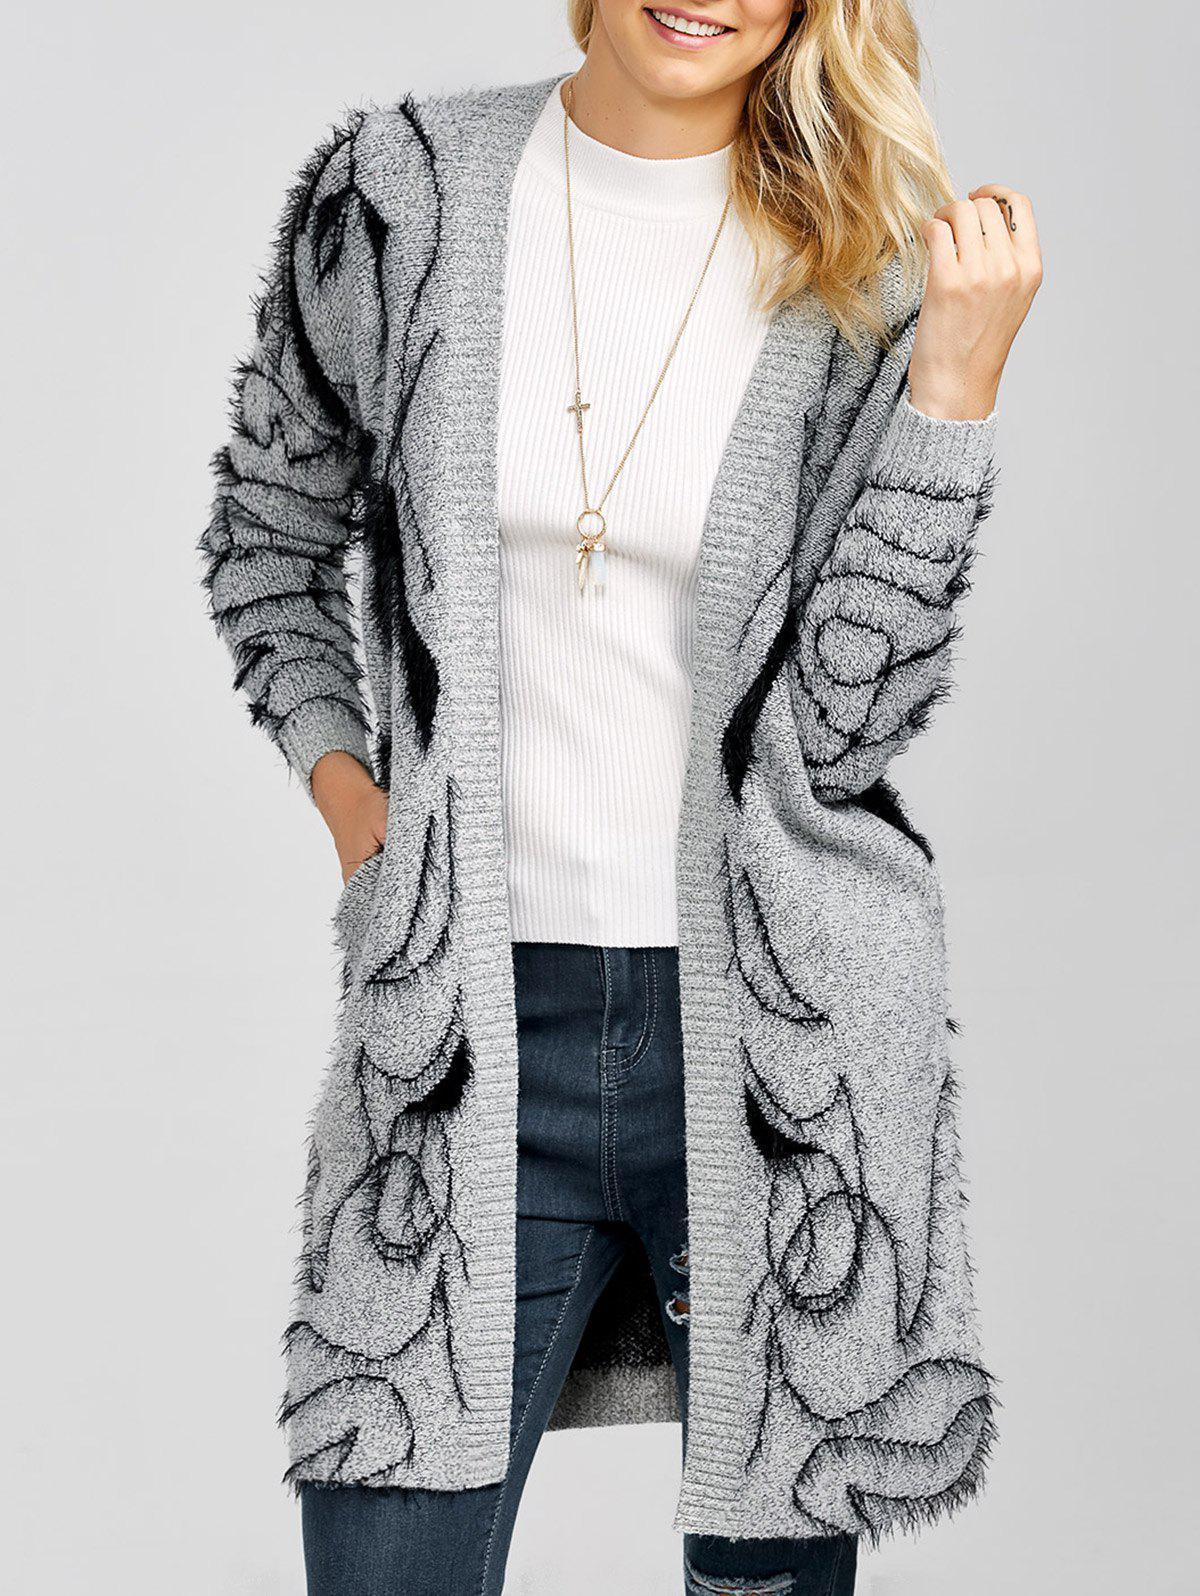 Longline Open Front Fuzzy Knit CardiganWomen<br><br><br>Size: ONE SIZE<br>Color: GRAY